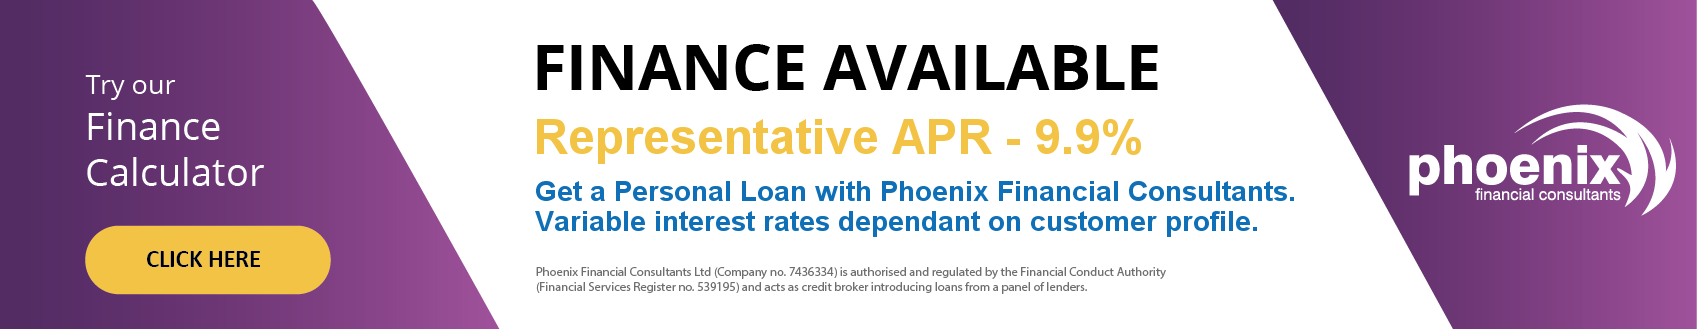 Phoenix Finance Available